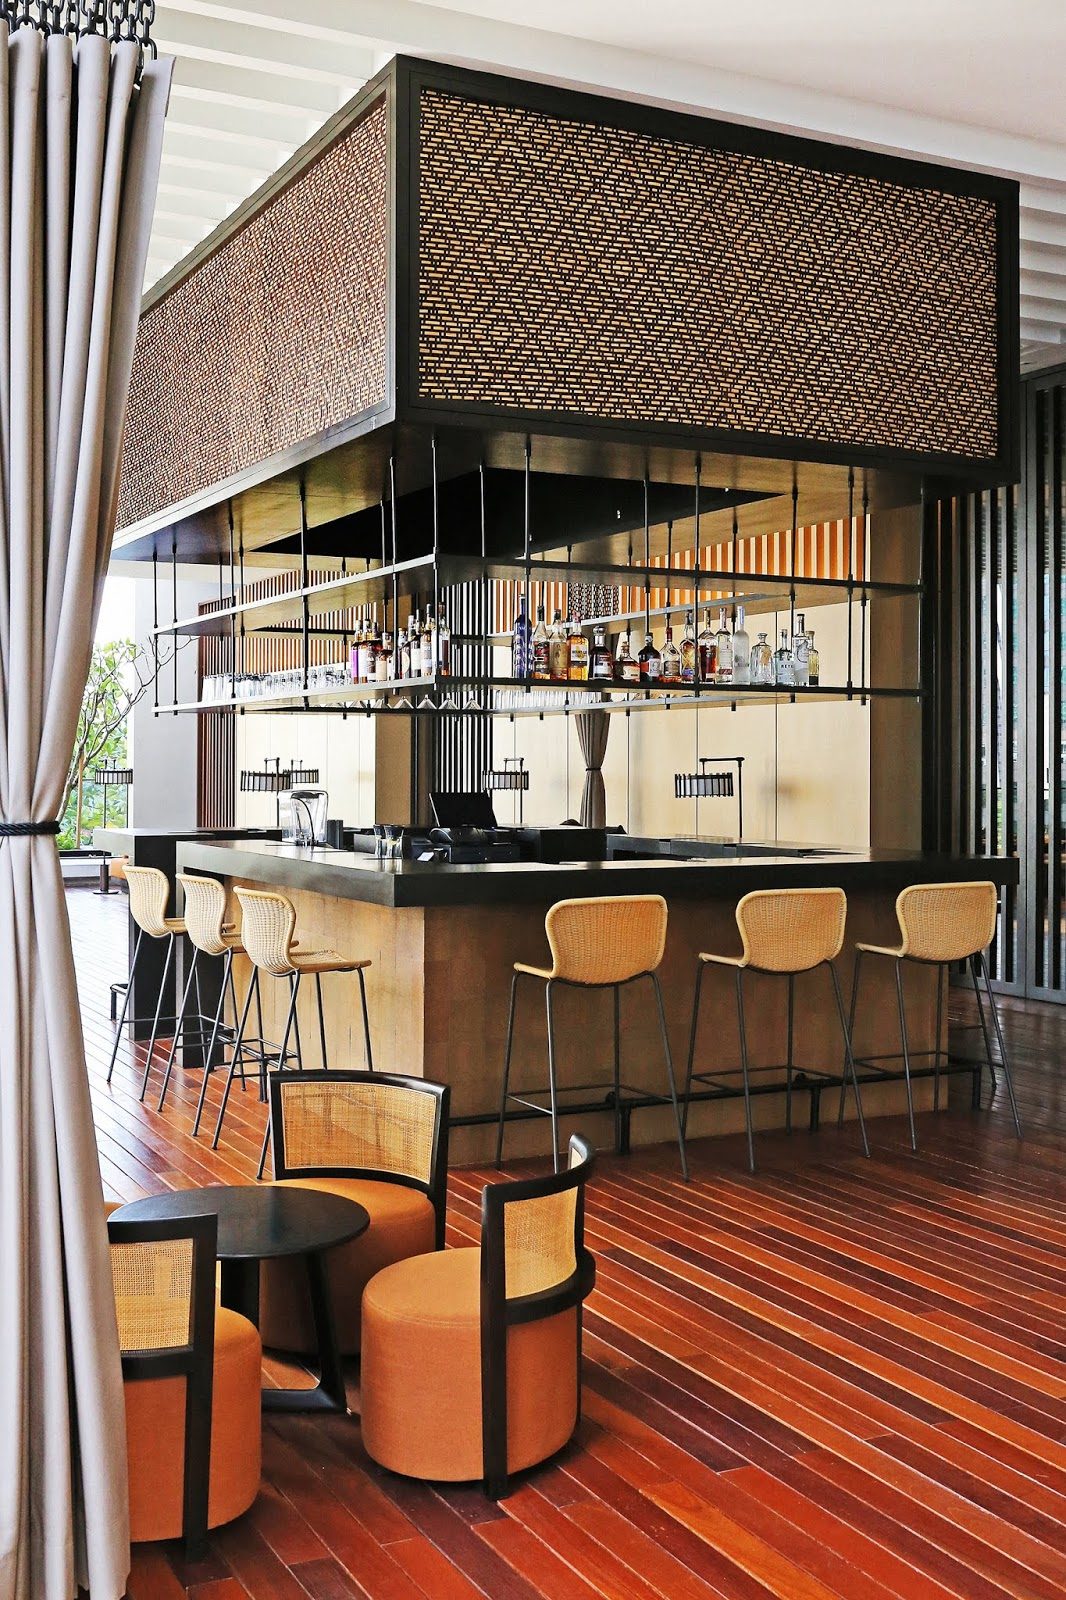 My review of The RuMa Hotel and Residences in Kuala Lumpur, Malaysia